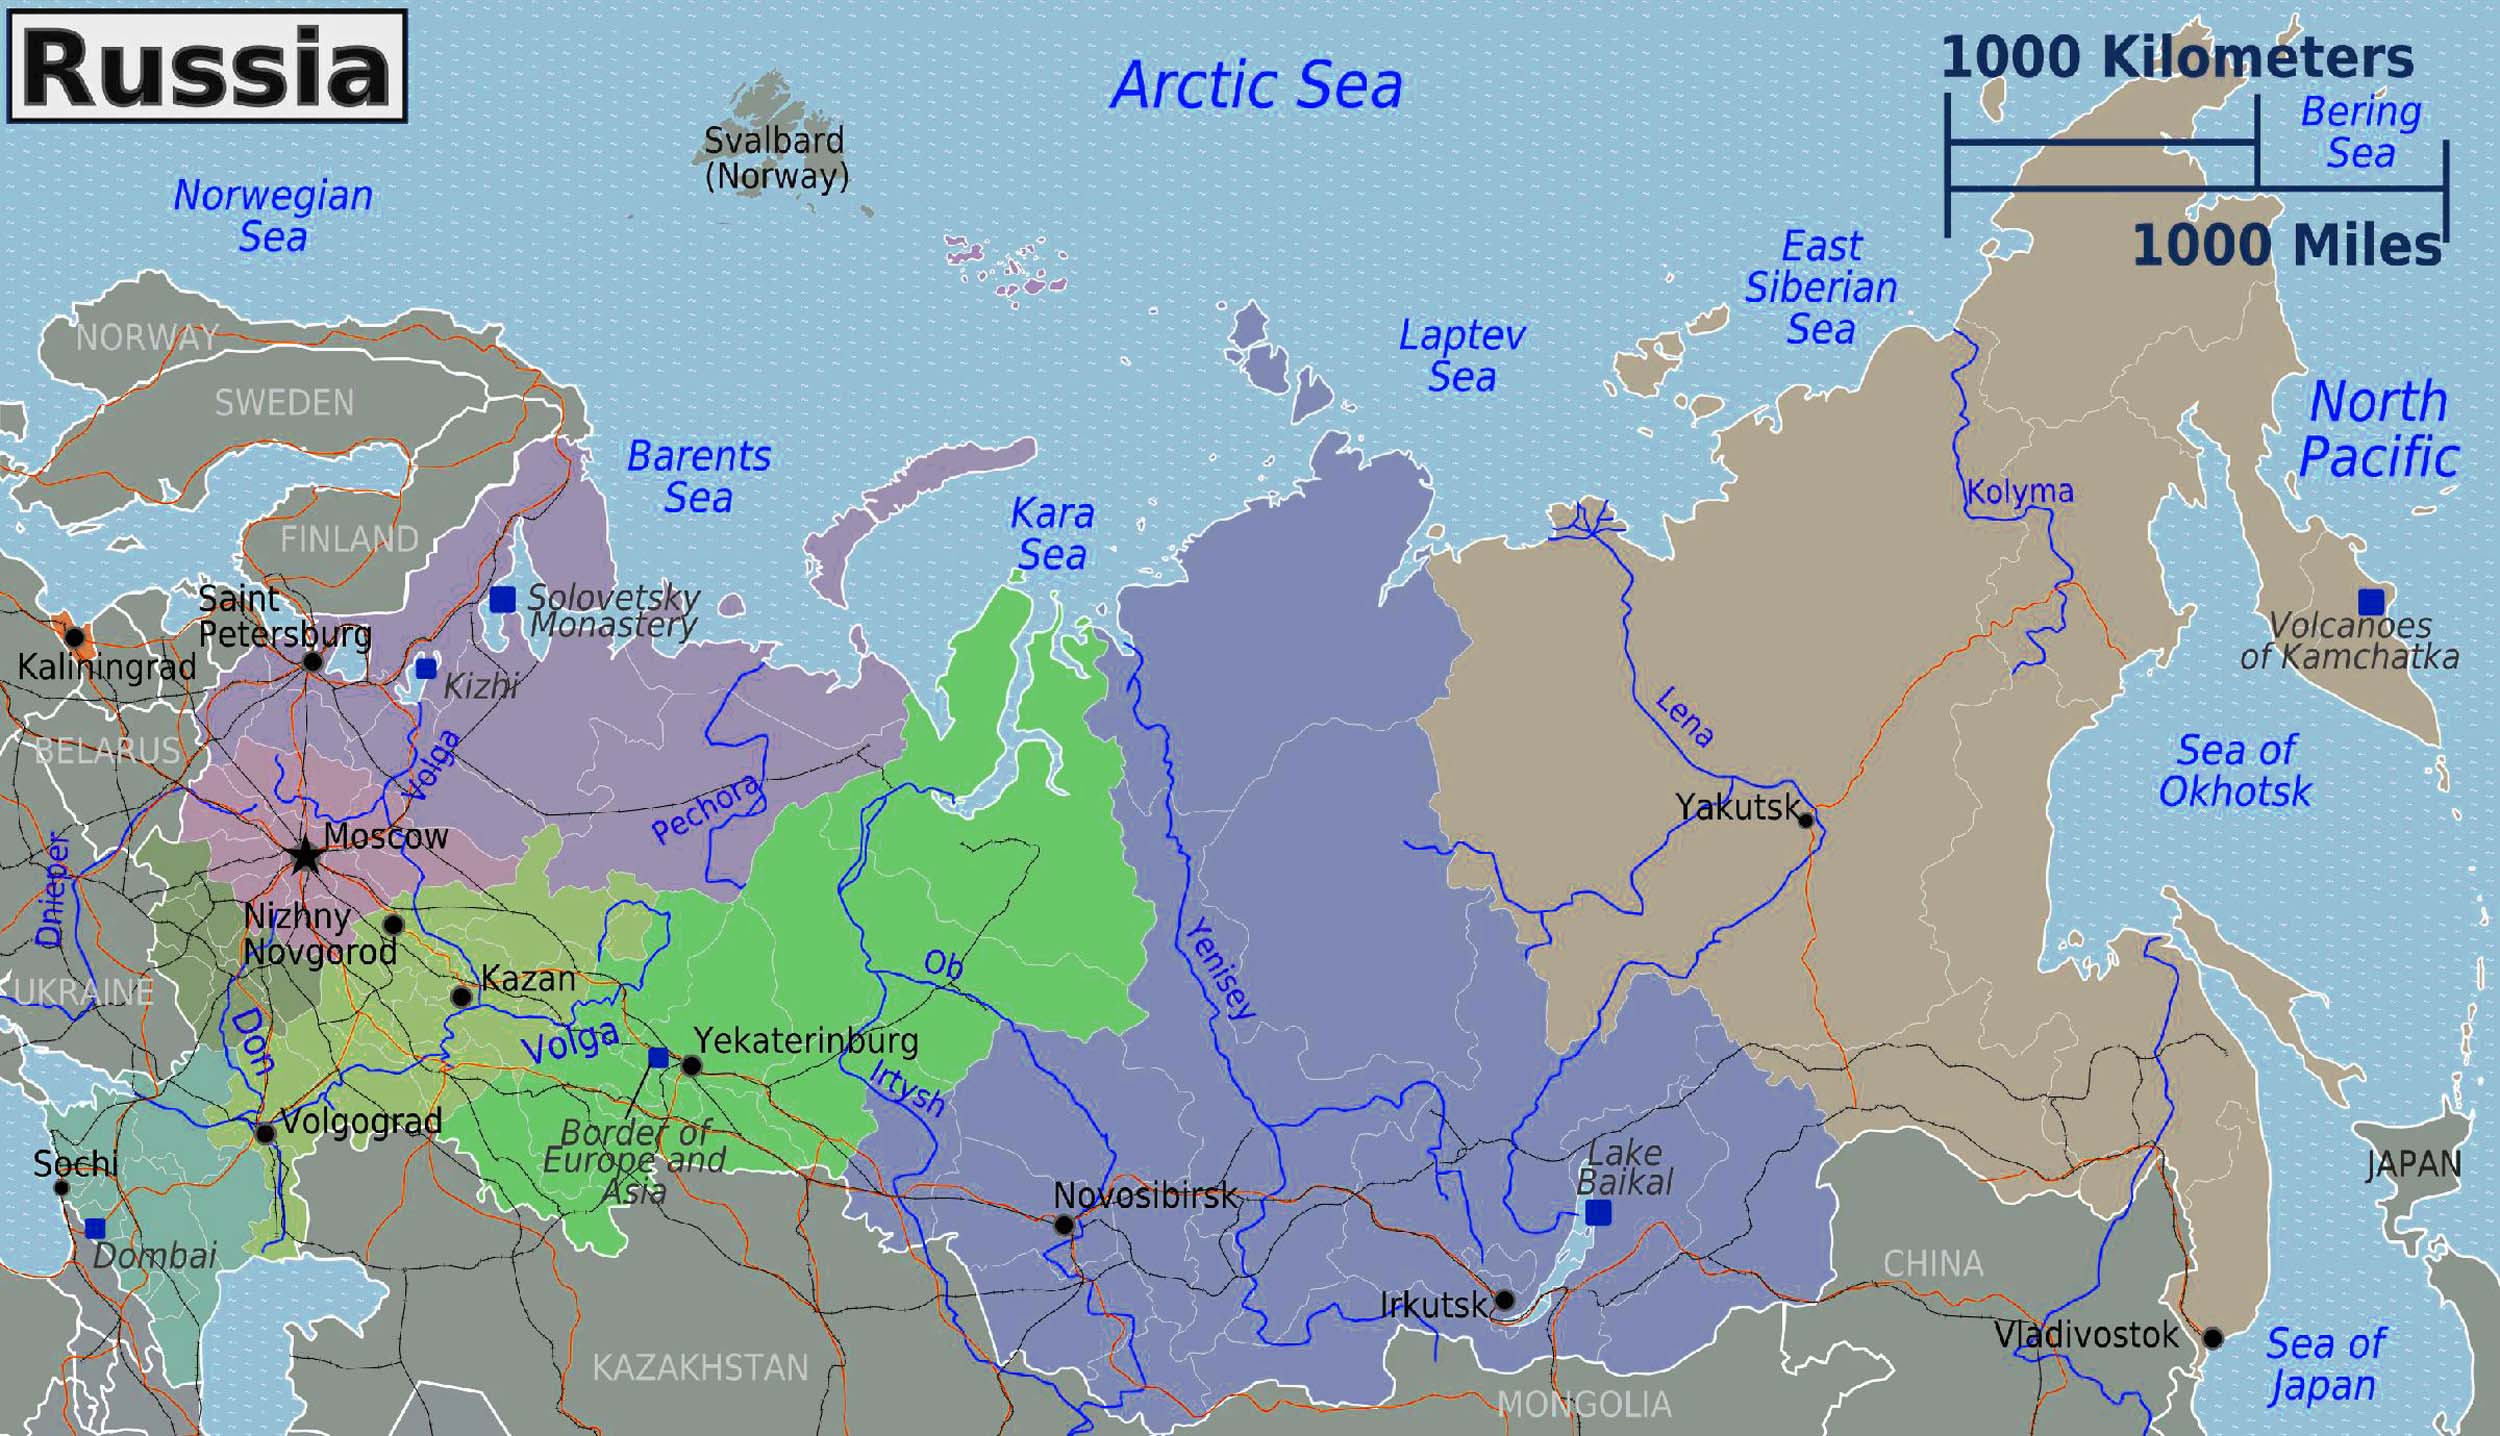 Russia Regions Map Large Size Travel Around The World Vacation - Japan map large size